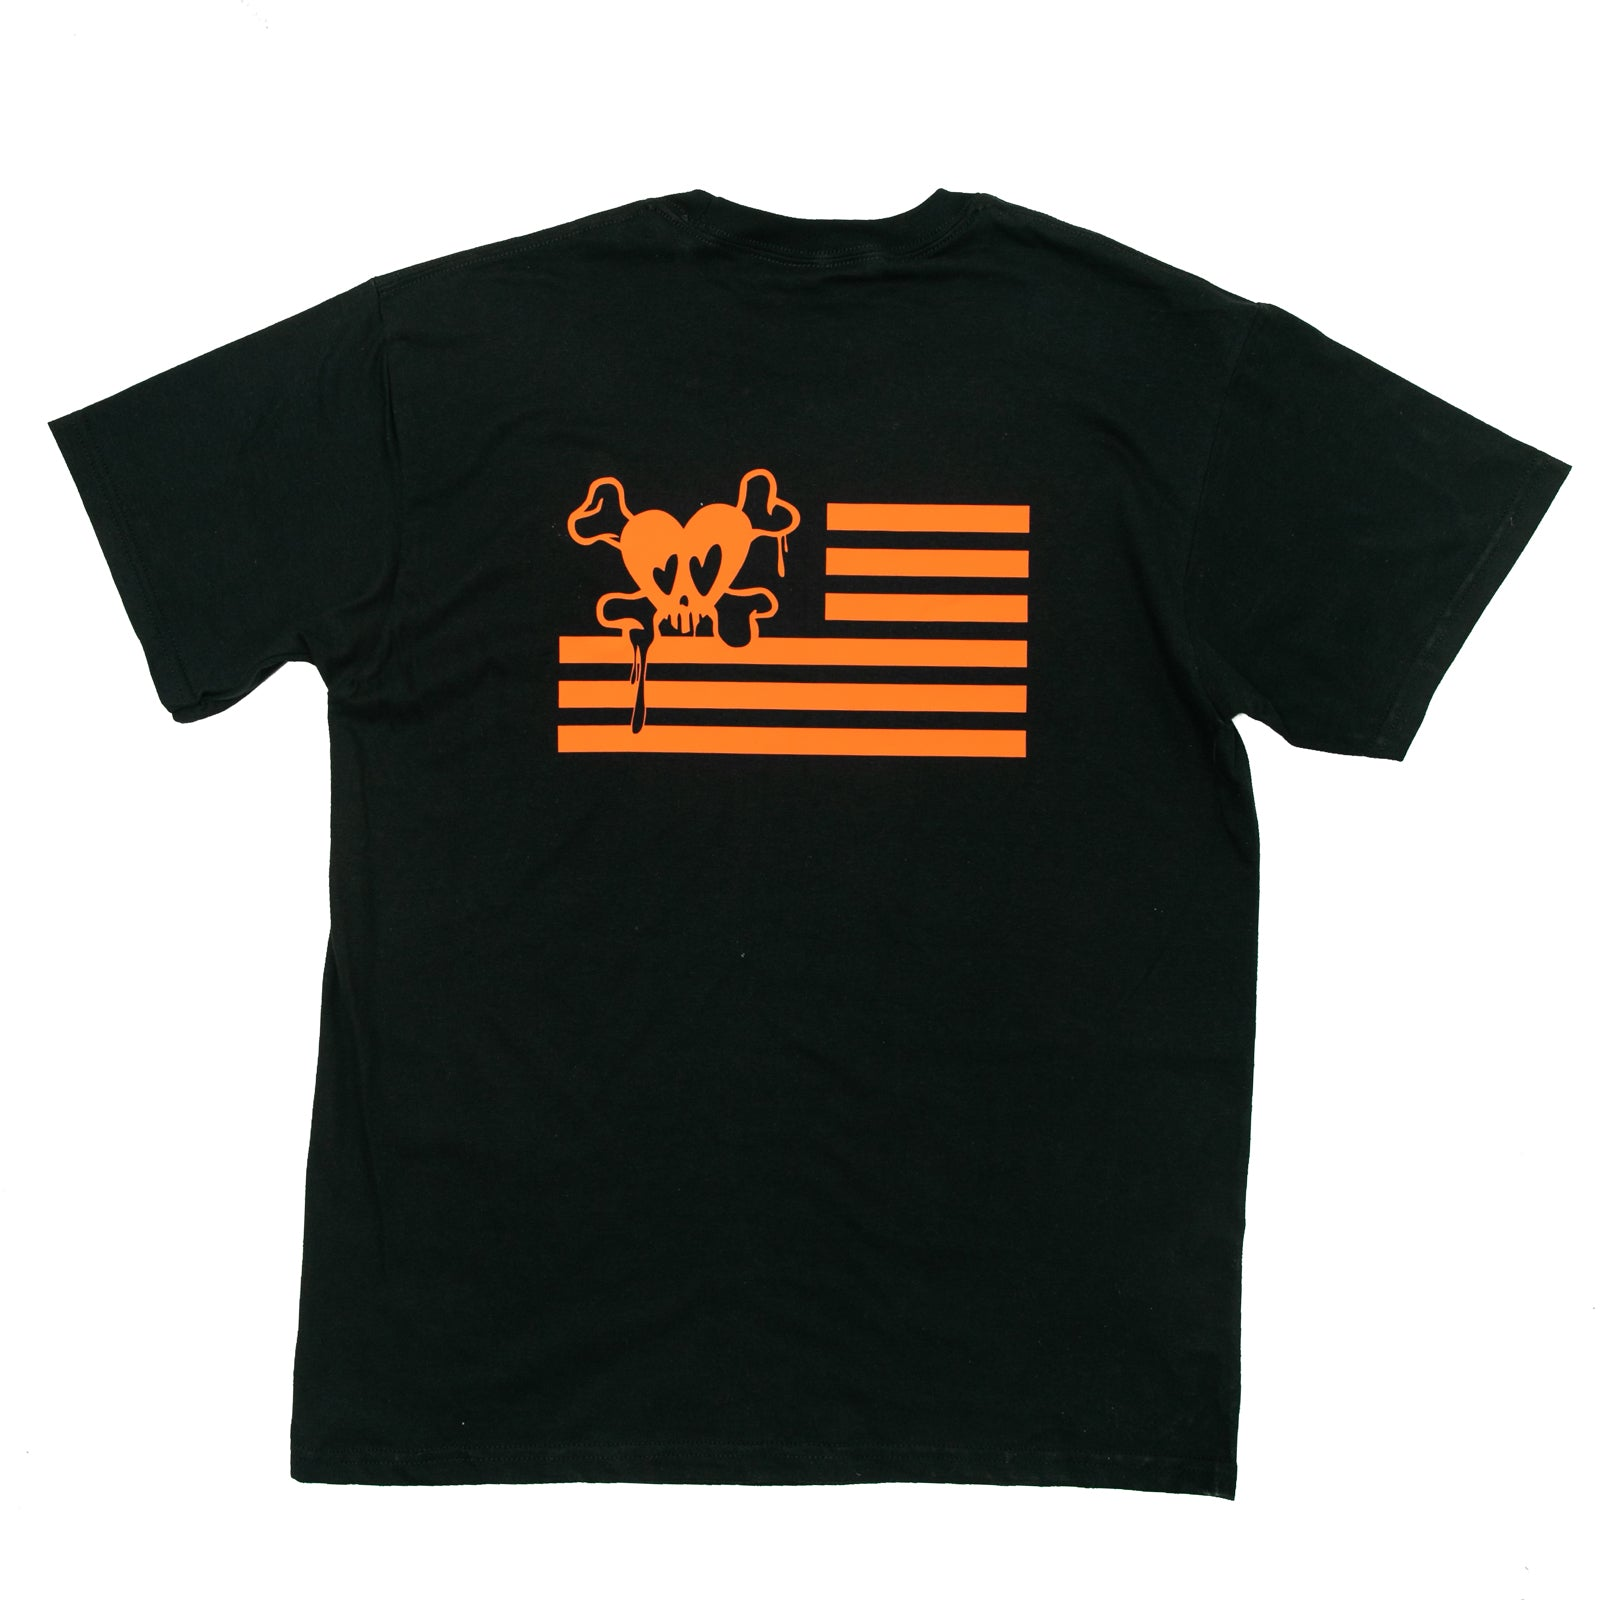 Loco Orange is the new Black T-shirt